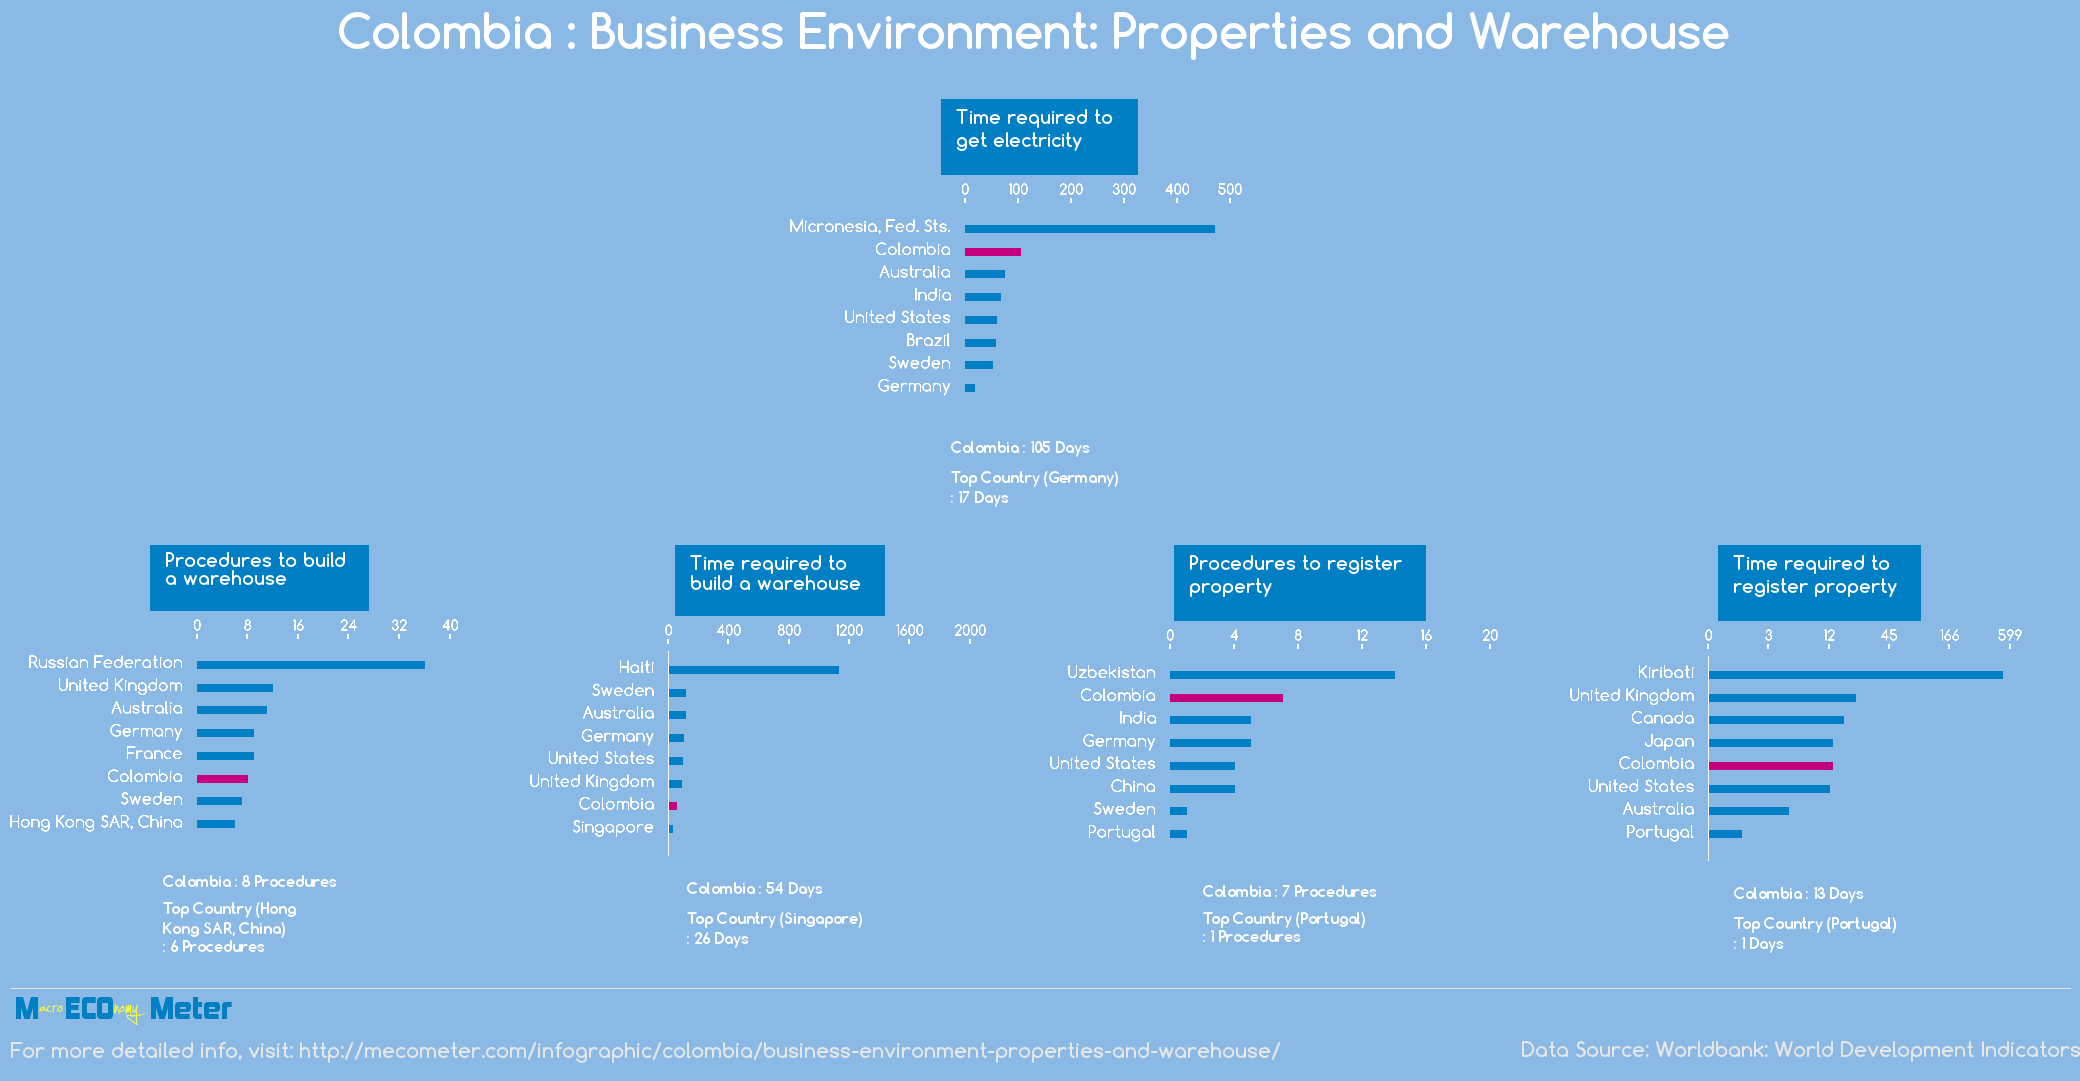 Colombia : Business Environment: Properties and Warehouse